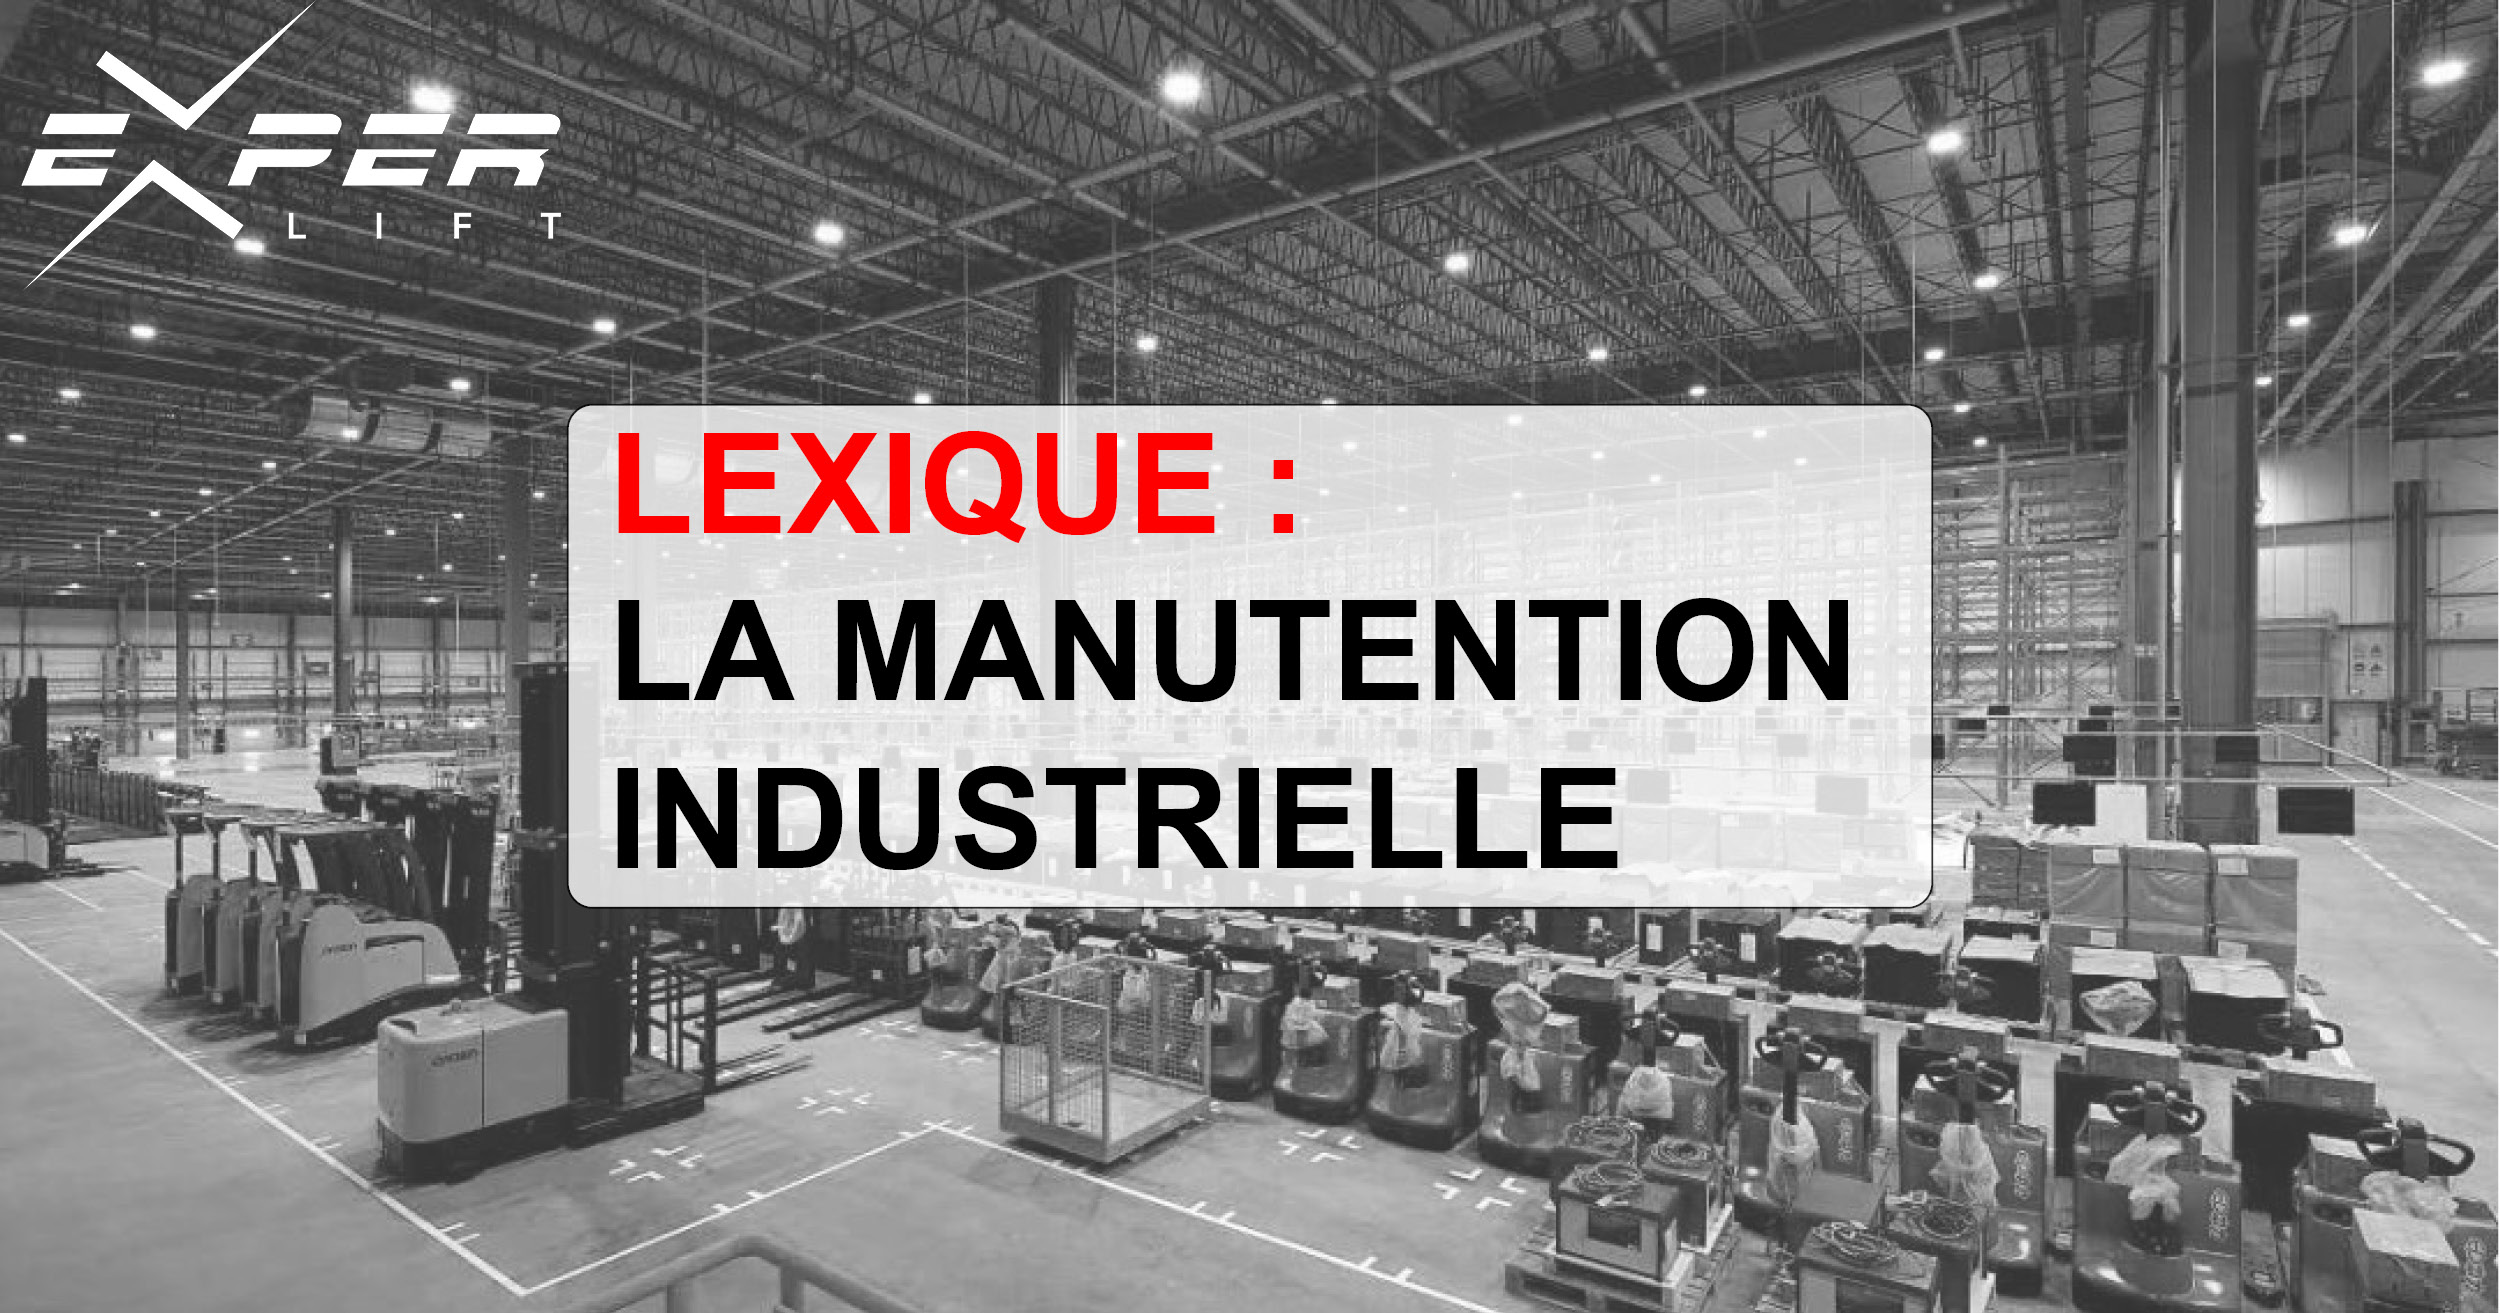 Lexique : La manutention industrielle